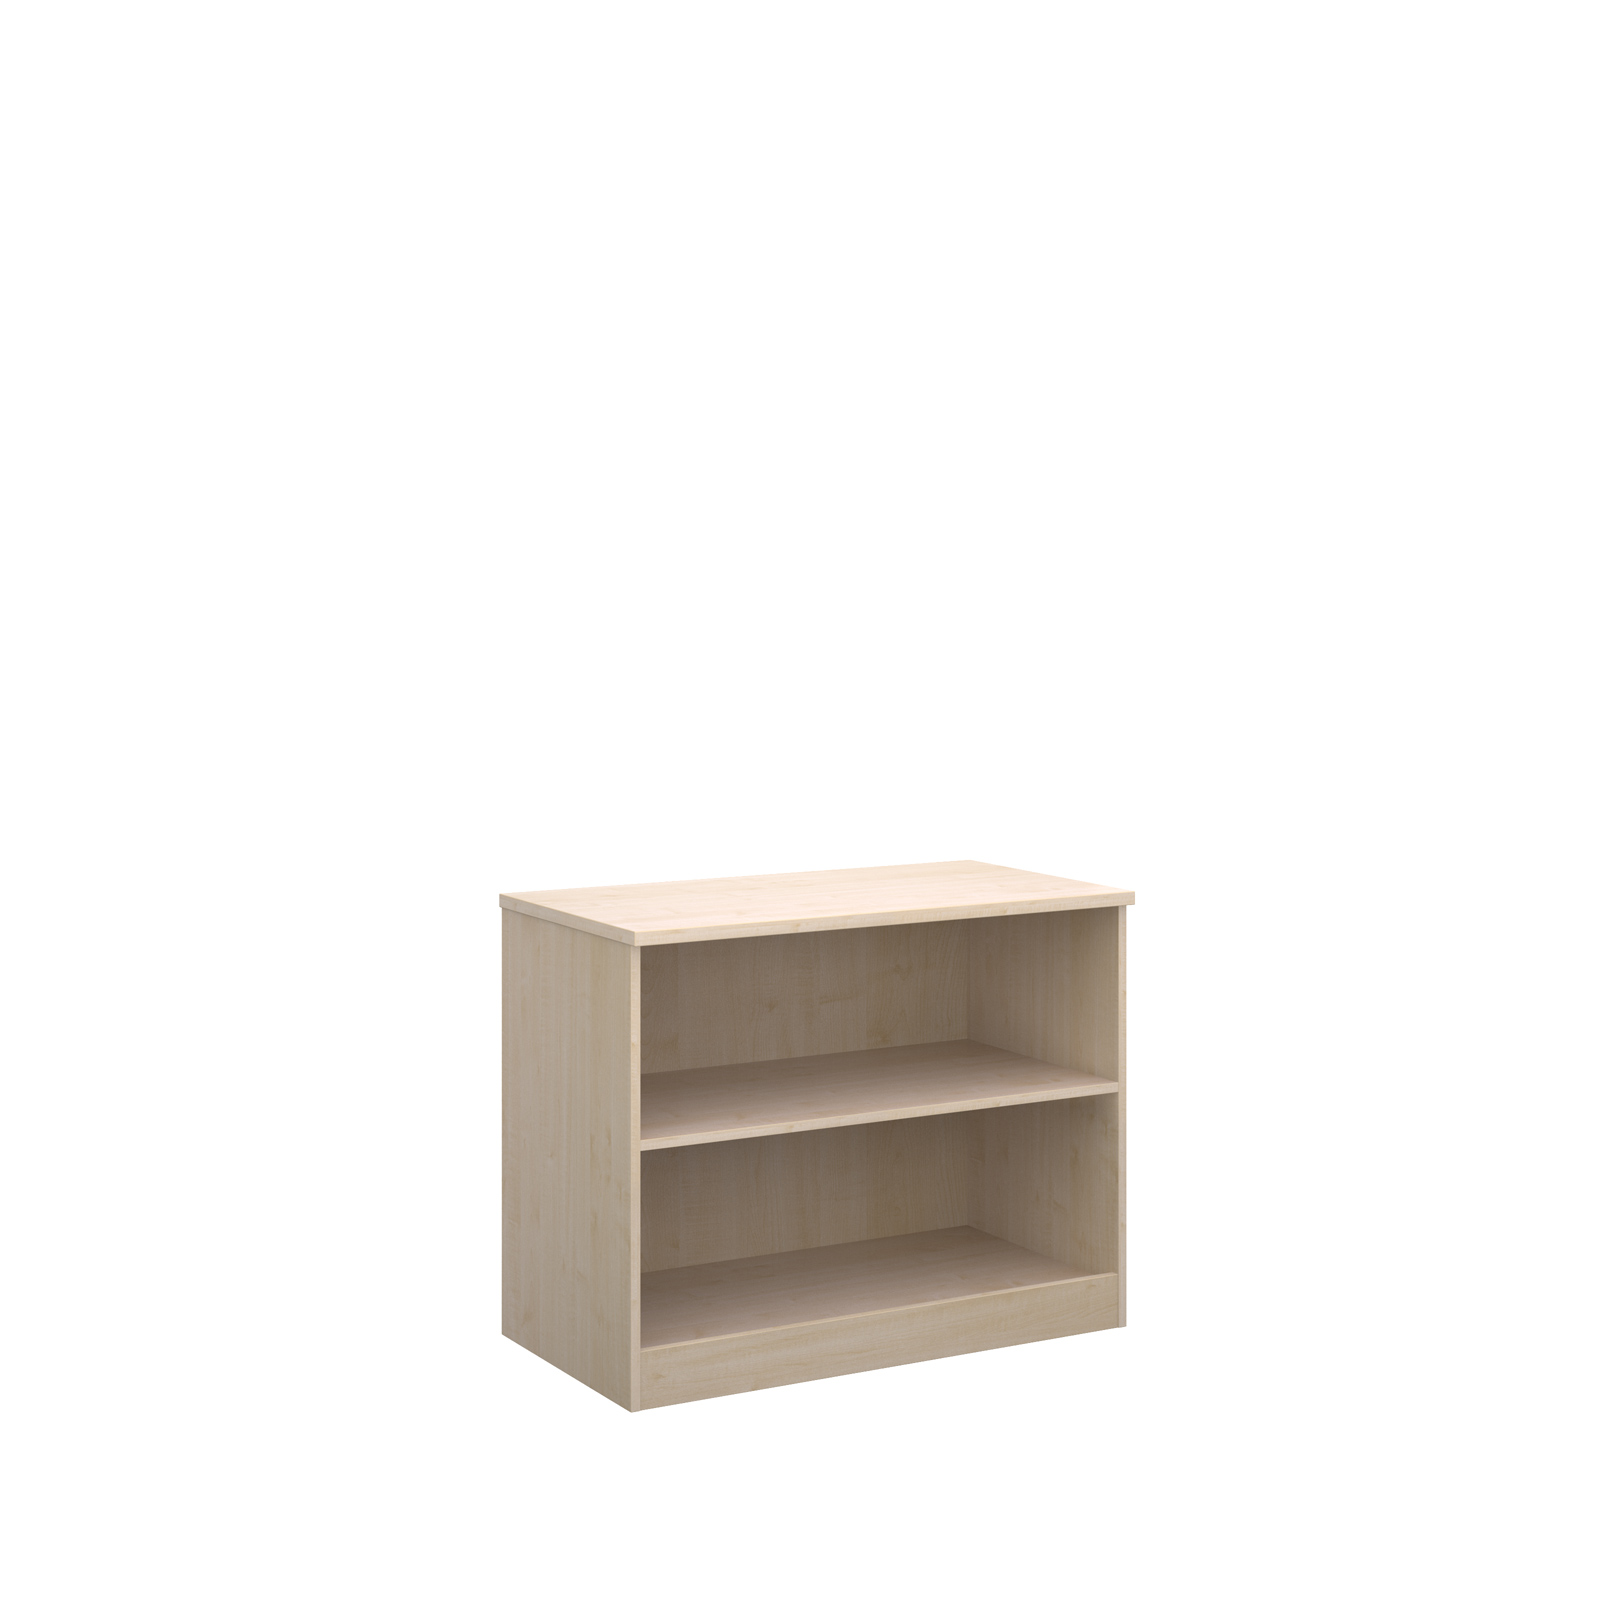 Dams Office Bookcase - Deluxe